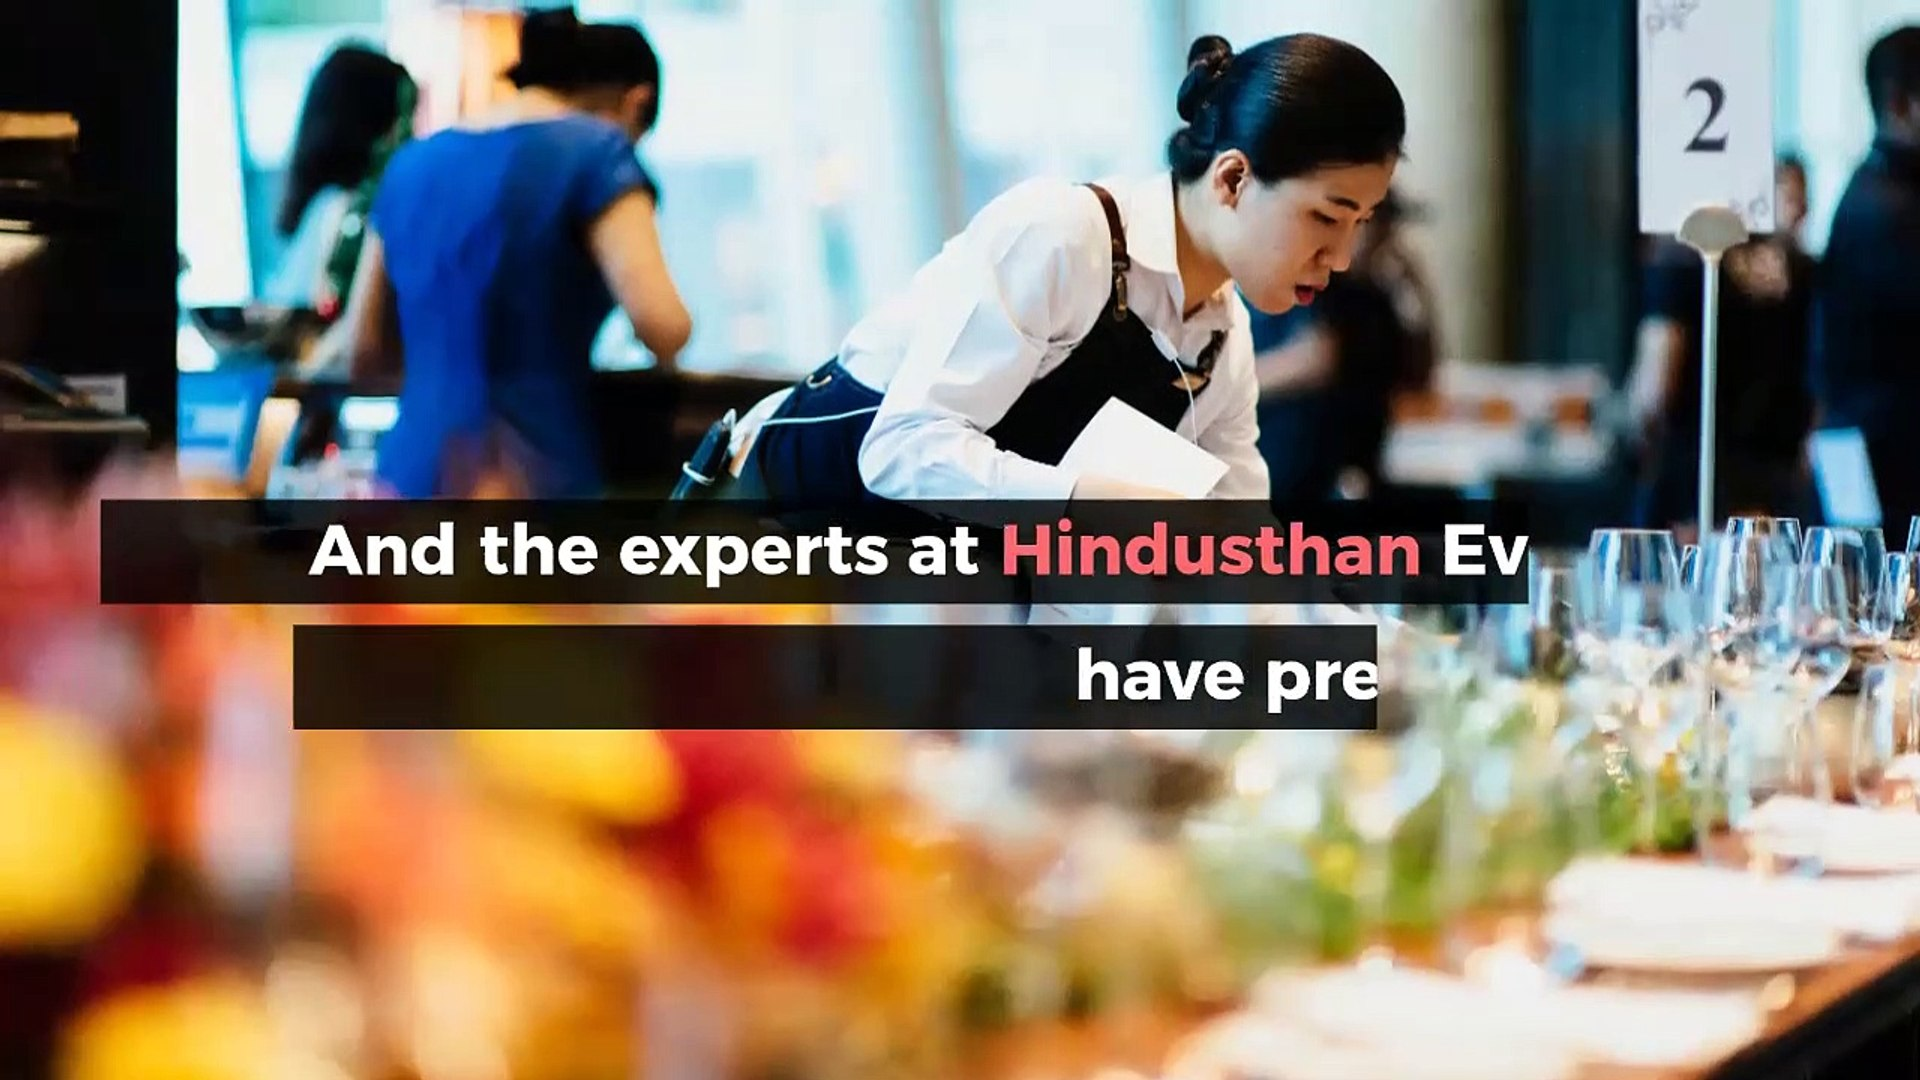 Event Organisers in Kolkata|Hindusthan Events|Event Planner in Kolkata